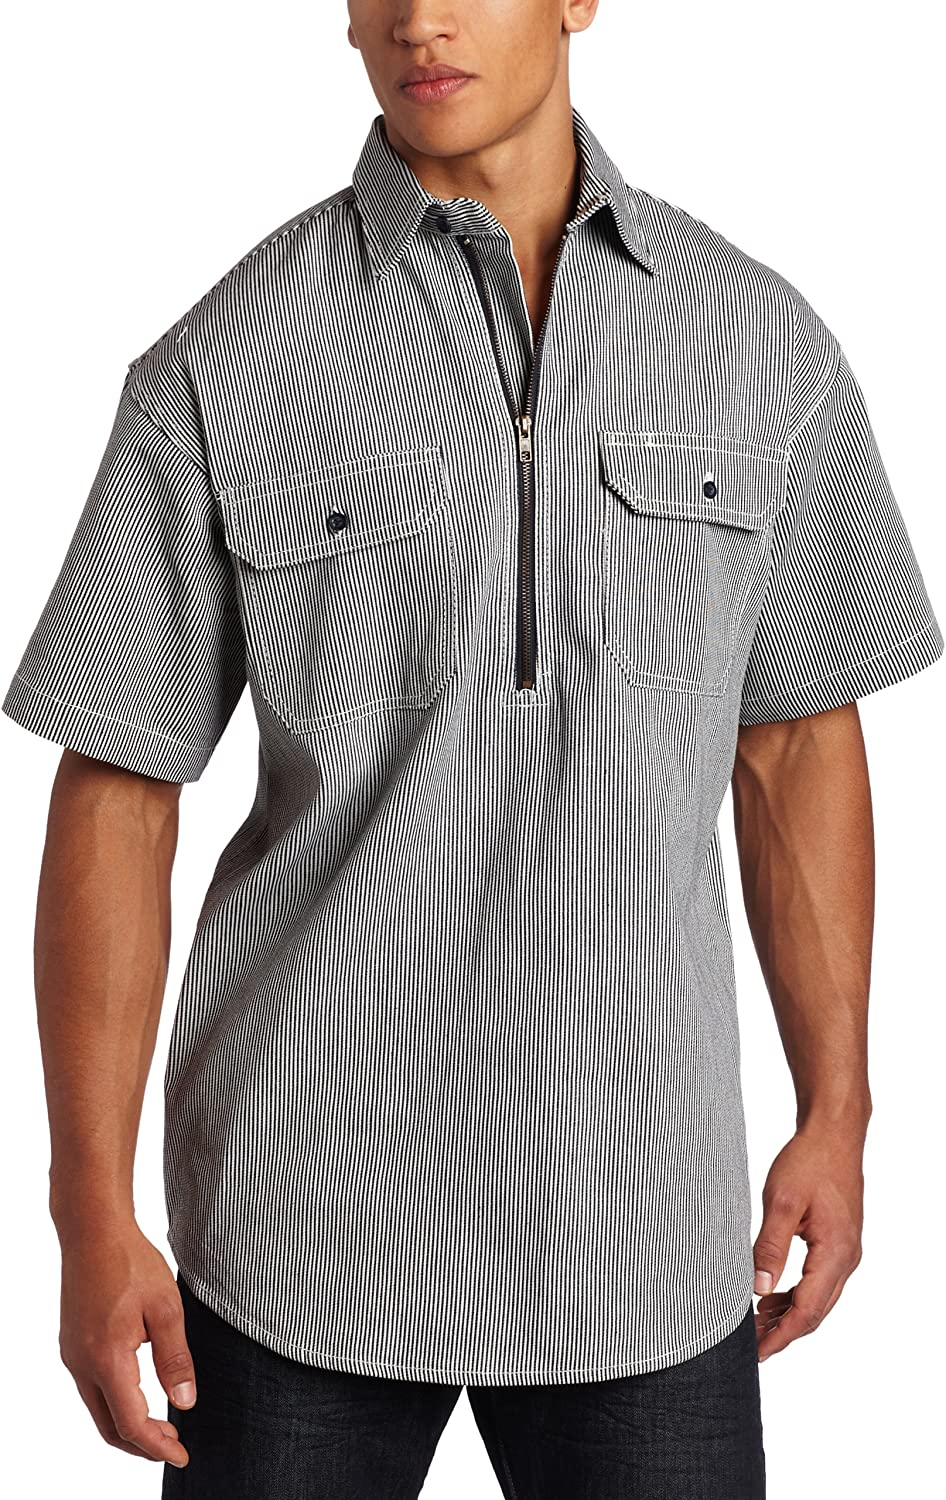 Men's Vintage Workwear Inspired Clothing Key Industries Mens Short Sleeve Zip Front Hickory Stripe Logger Shirt $31.98 AT vintagedancer.com